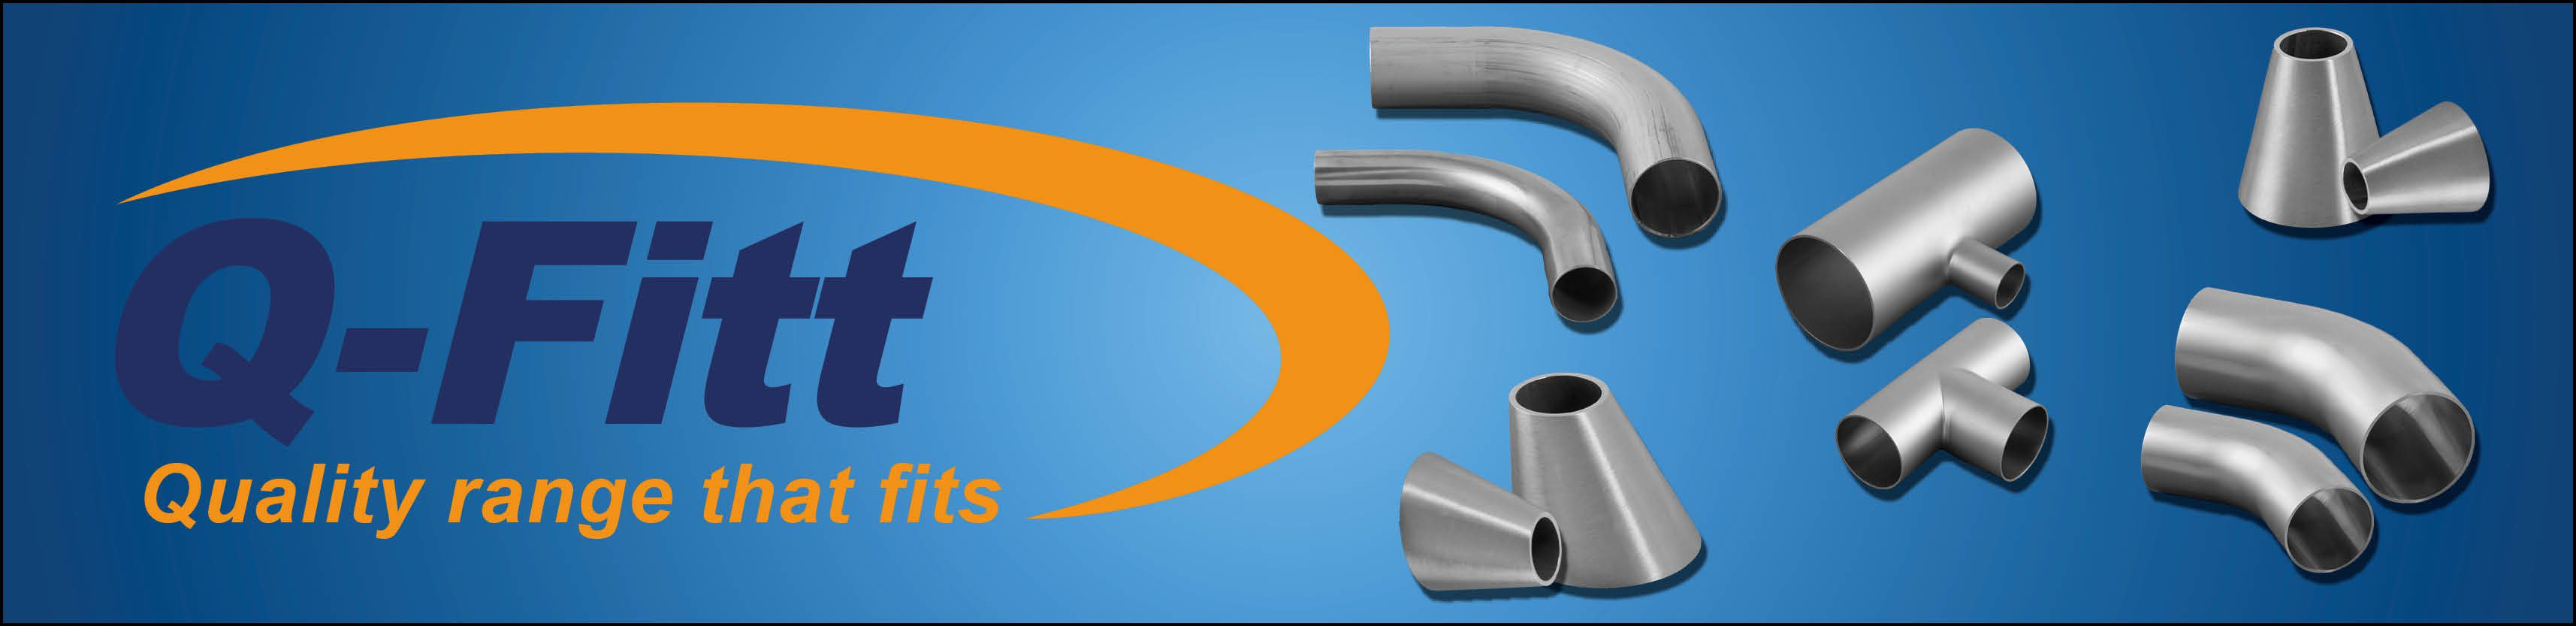 Q-Fitt welding fittings